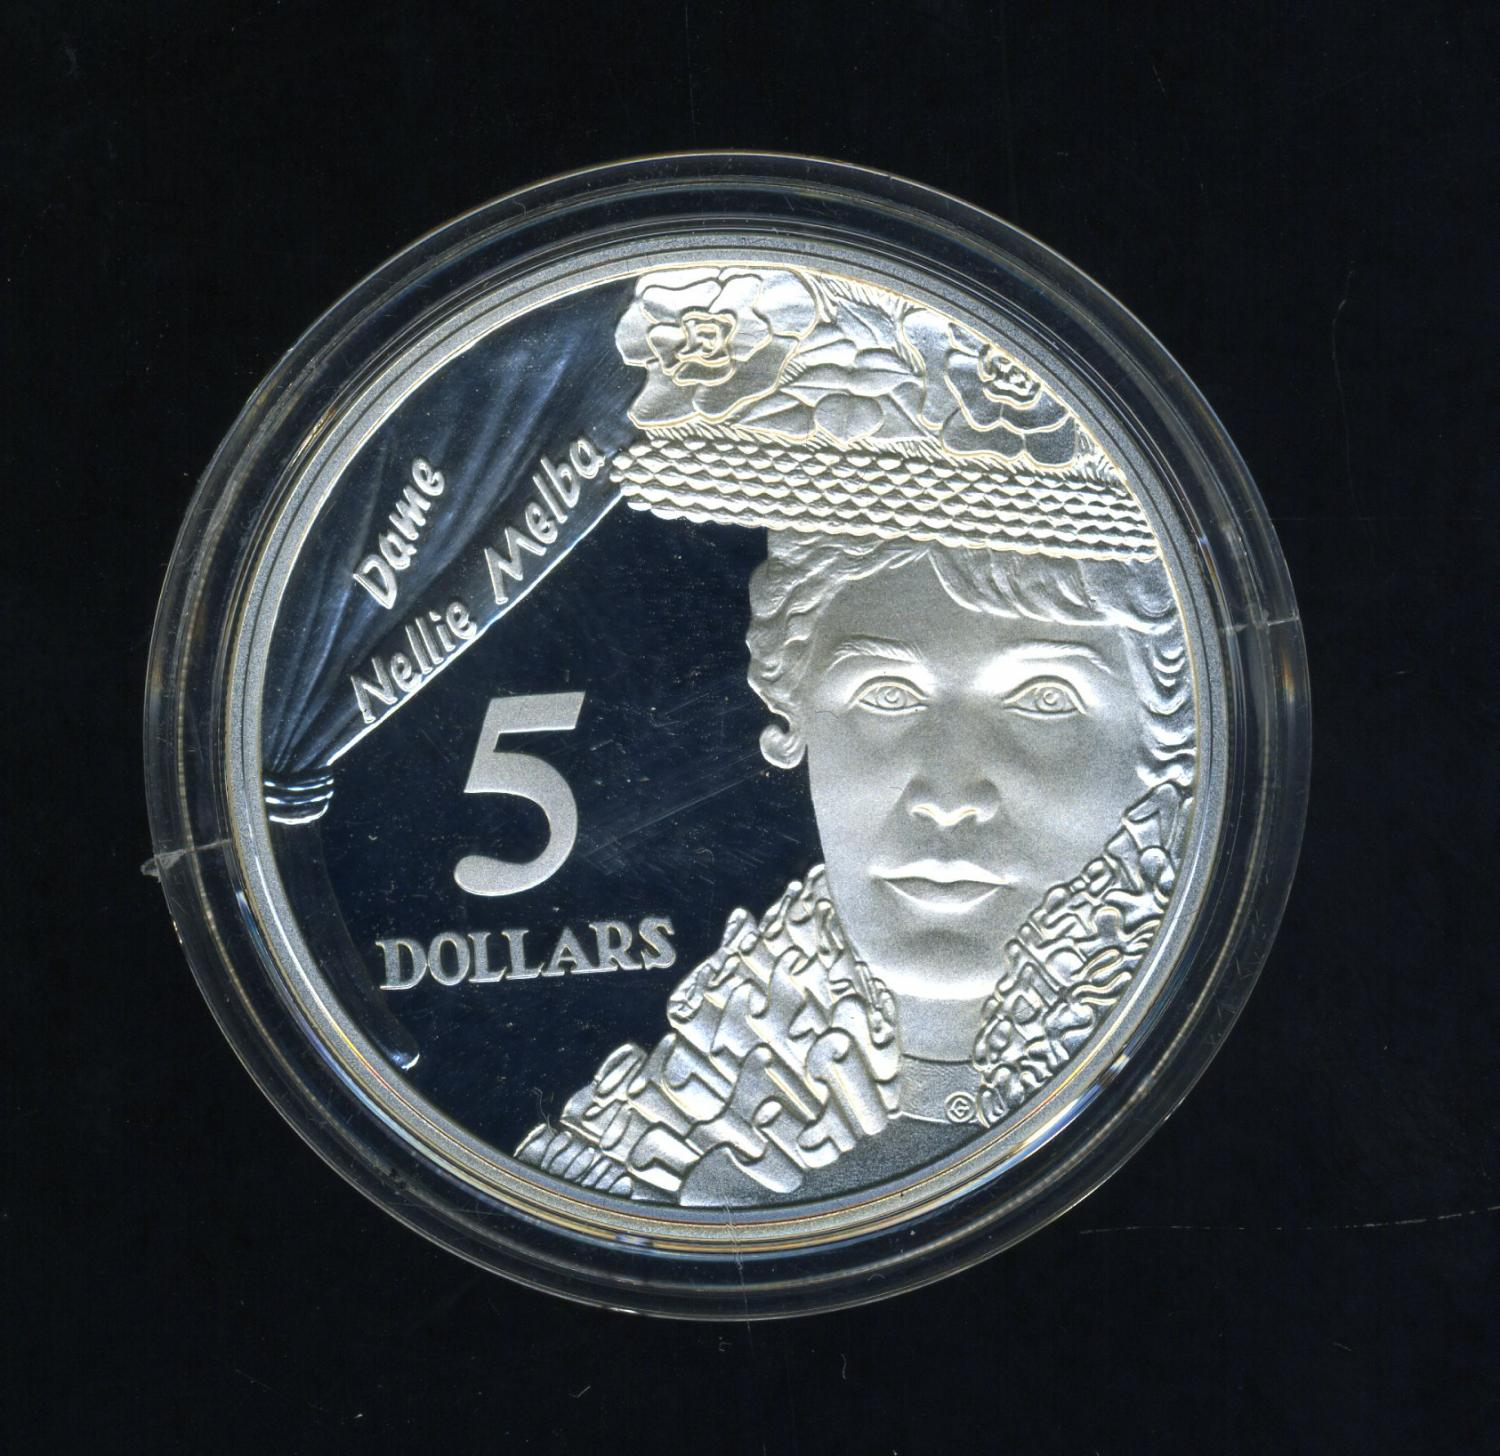 Thumbnail for 1996 Australian $5 Silver Coin From Masterpieces Set - Dame Nellie Melba.  The Coin is Sterling Silver and contains over 1oz of Pure Silver.